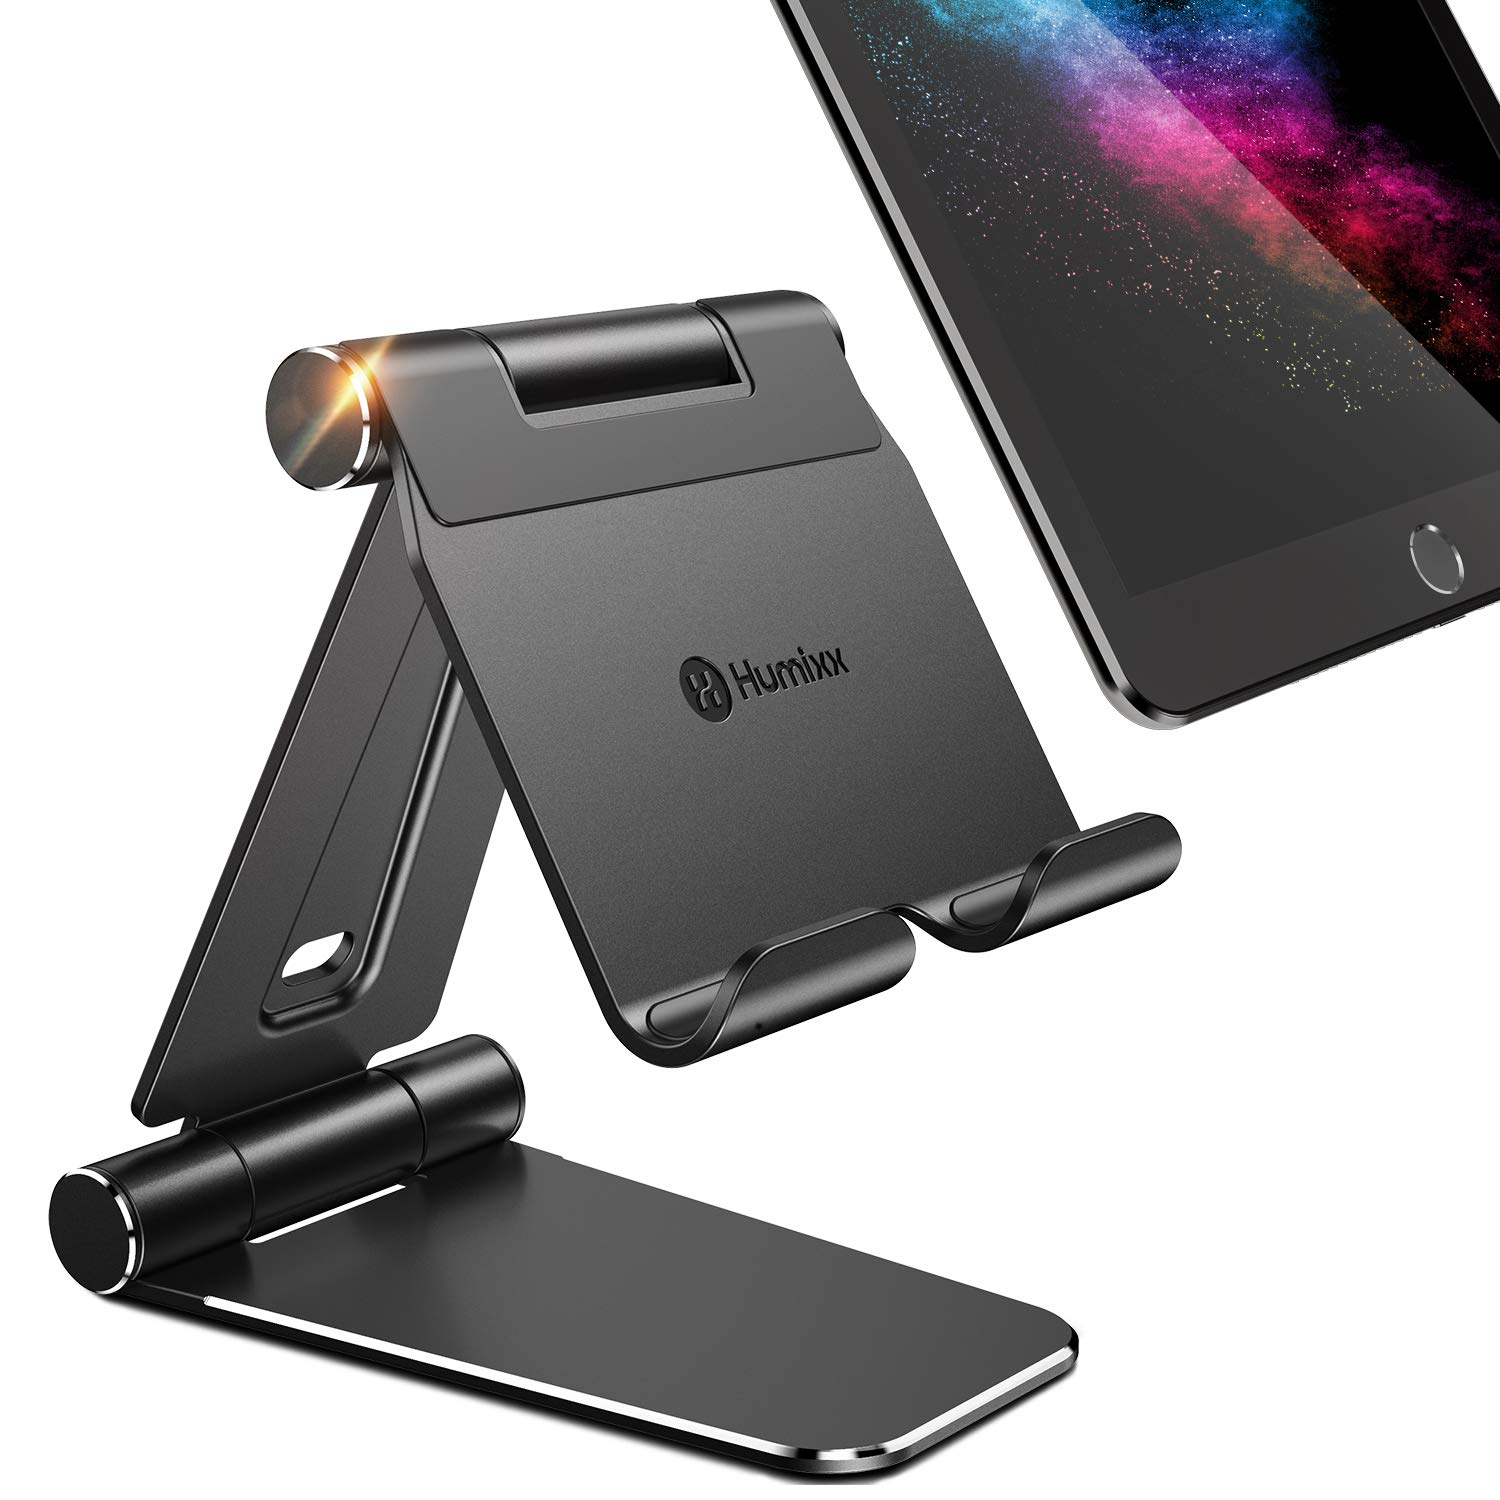 Humixx Tablet Stand, Dual Adjustable Phone Stand [Sturdy No-Slip/Shaking] Foldable Holder Dock for iPad Pro 12.9 Air Mini 4 3 2, iPhone Xs Max XR, Nintendo Switch Kindle Nexus Tab E-Reader (4-13 Inch) by humixx